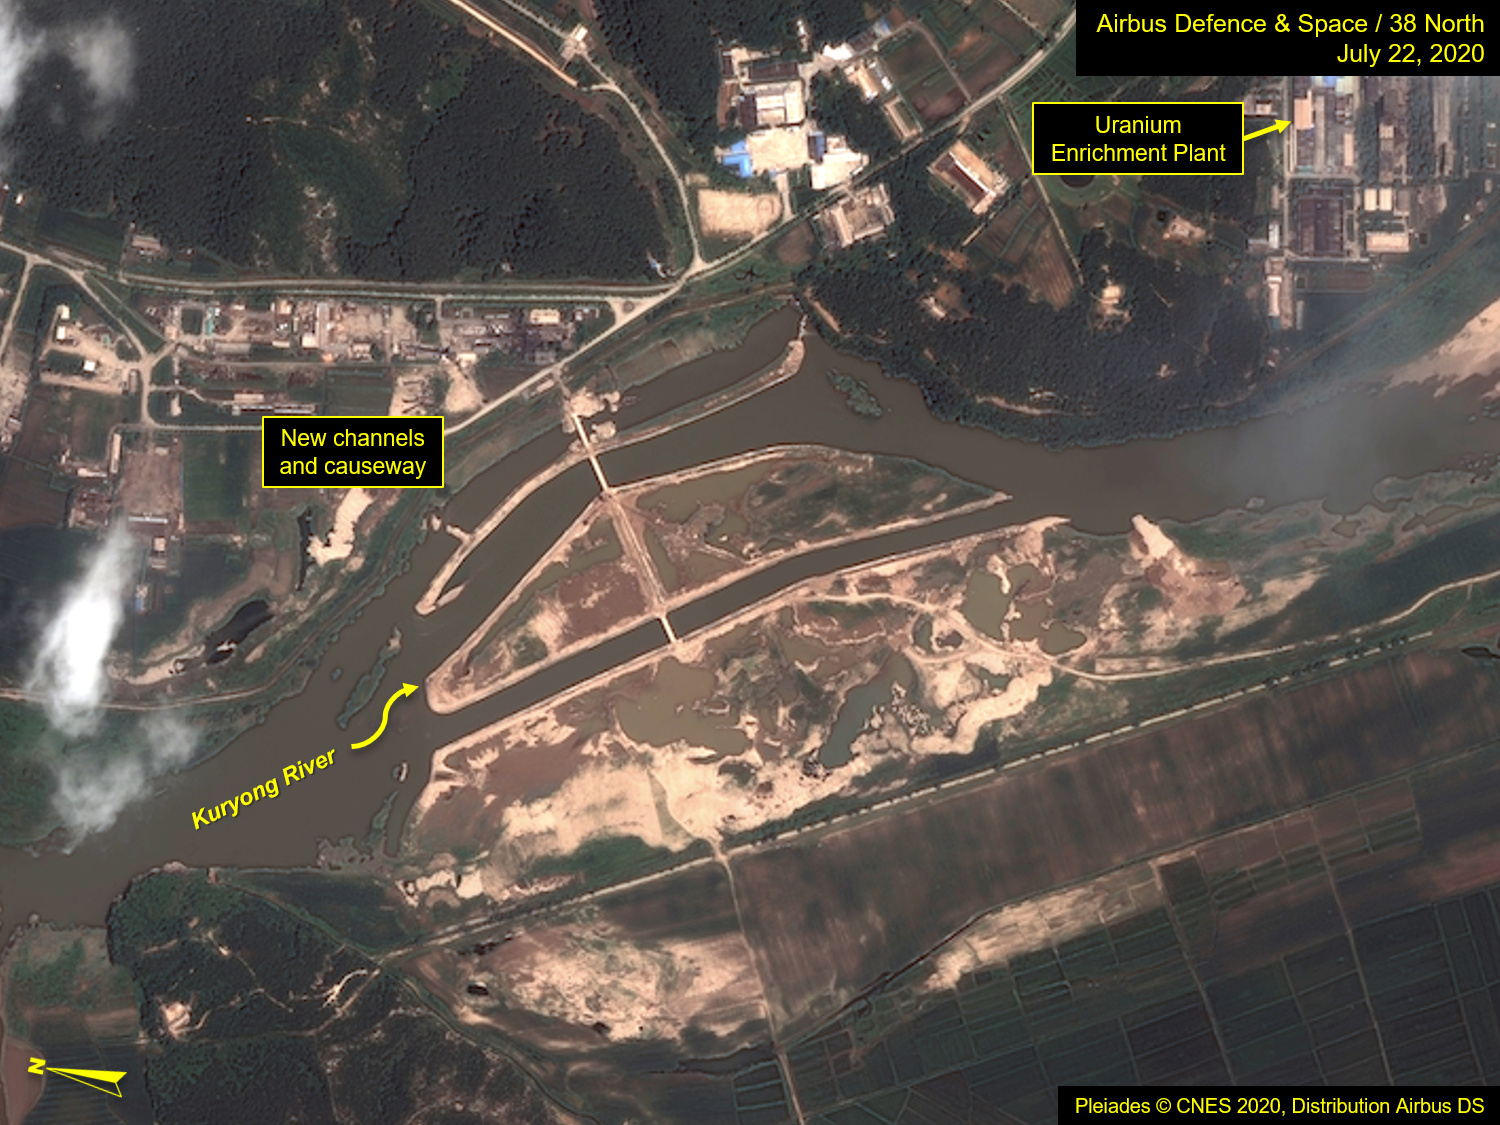 A view of the Yongbyon Nuclear Scientific Research Center on the bank of the Kuryong River in Yongbyon, North Korea, July 22, 2020. By August 6, 2020 the area had become flooded.